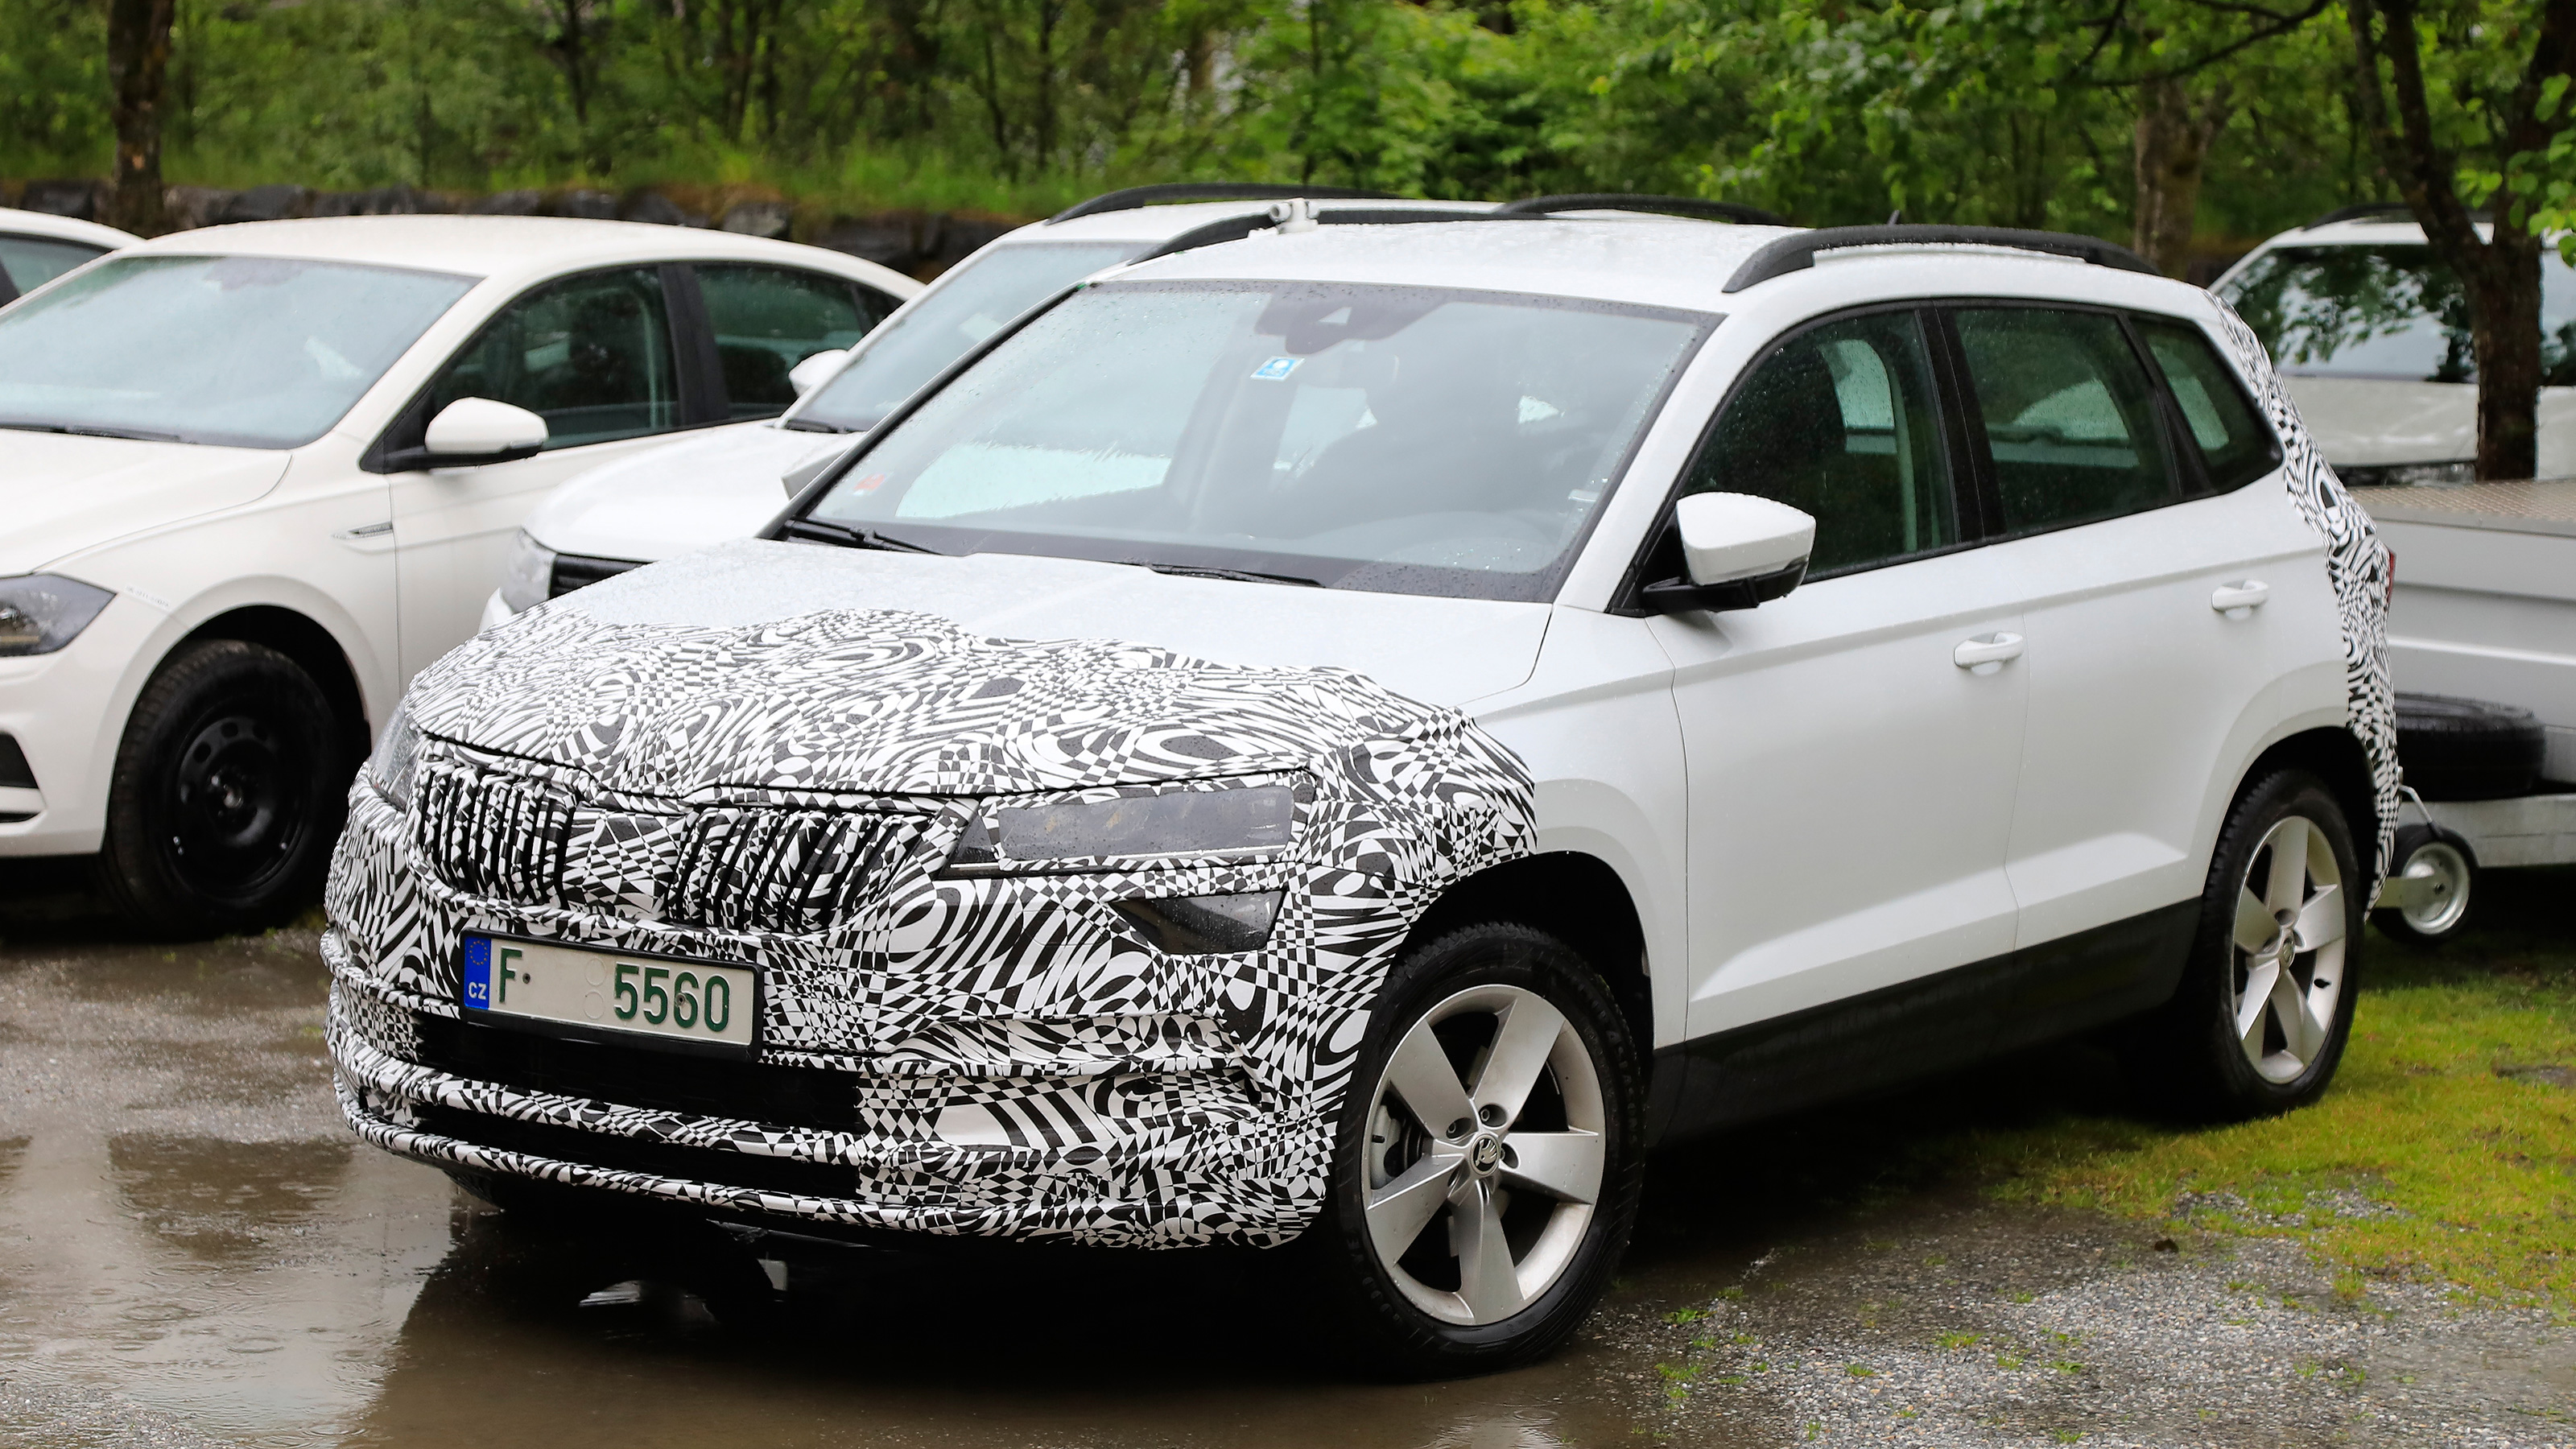 Facelifted Skoda Karoq Spied Ahead Of Late 2020 Debut Auto Express